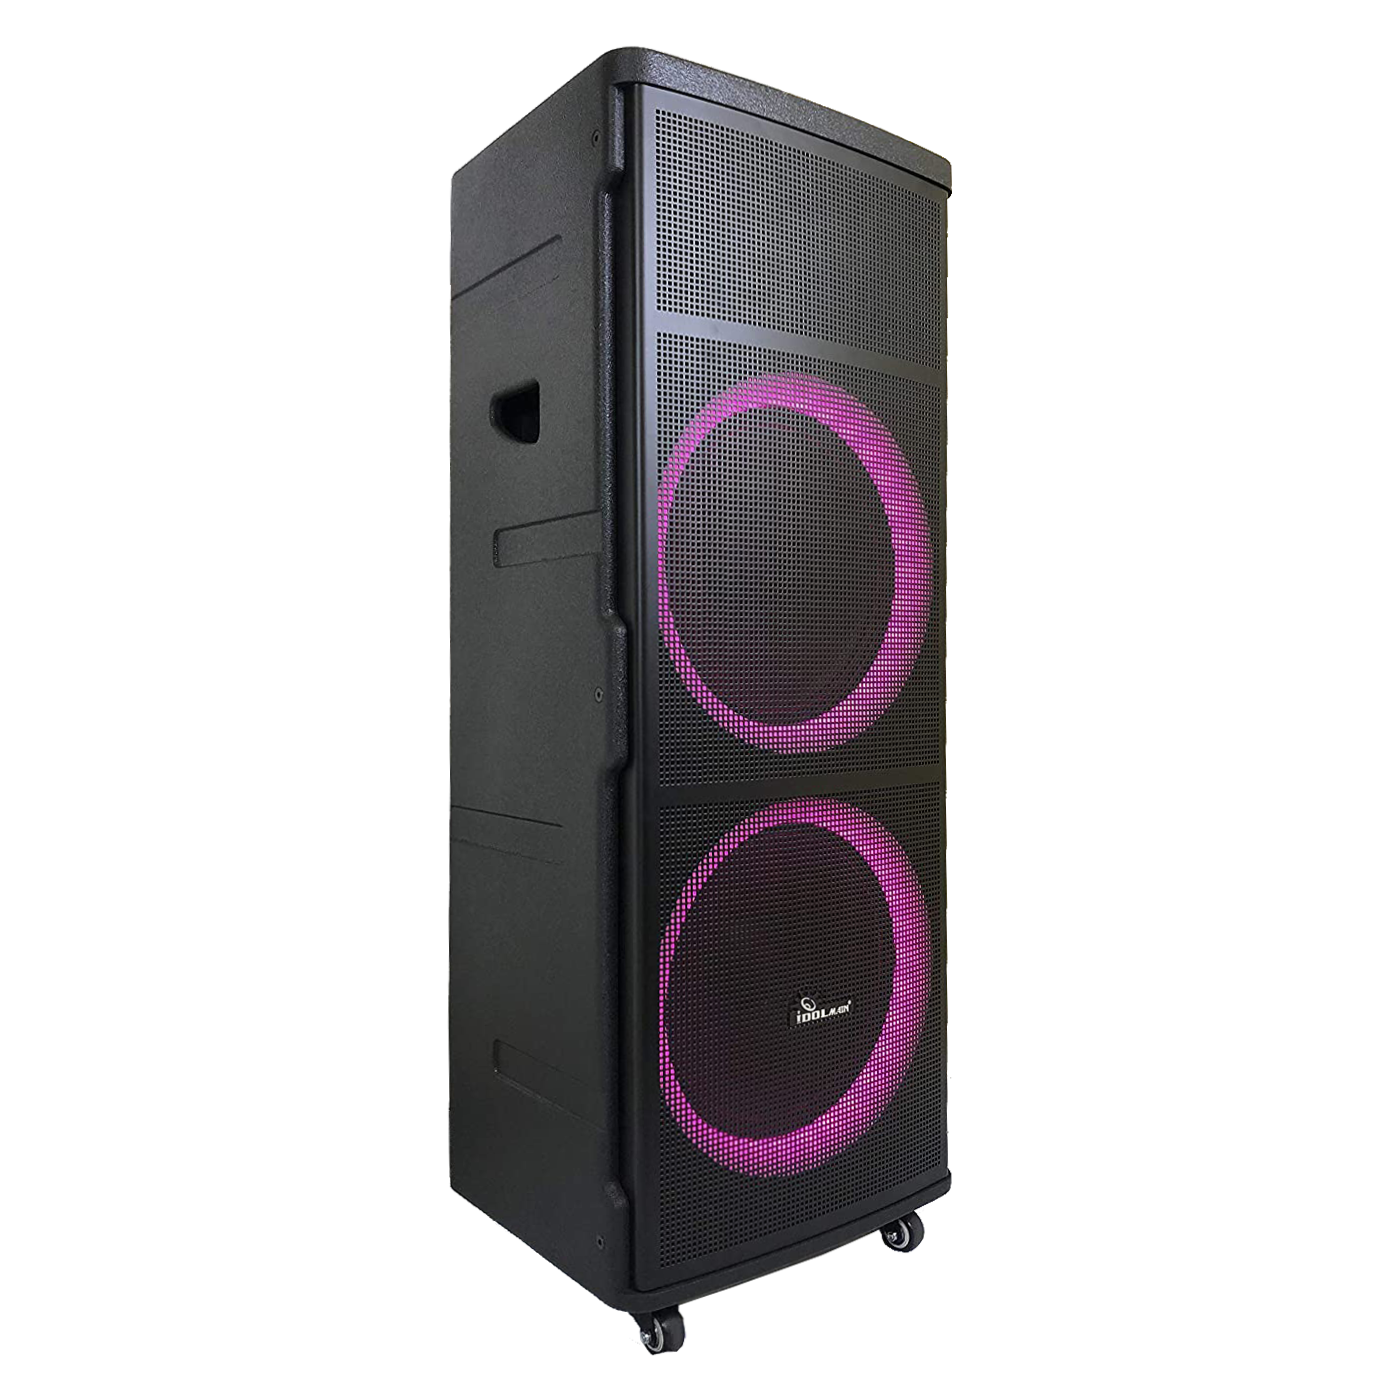 IDOlmain IPS-DJ06 Rechargeable Party Speaker With Bluetooth, Optical and, USB/SD Port. Includes Dual Rechargeable Wireless Microphone